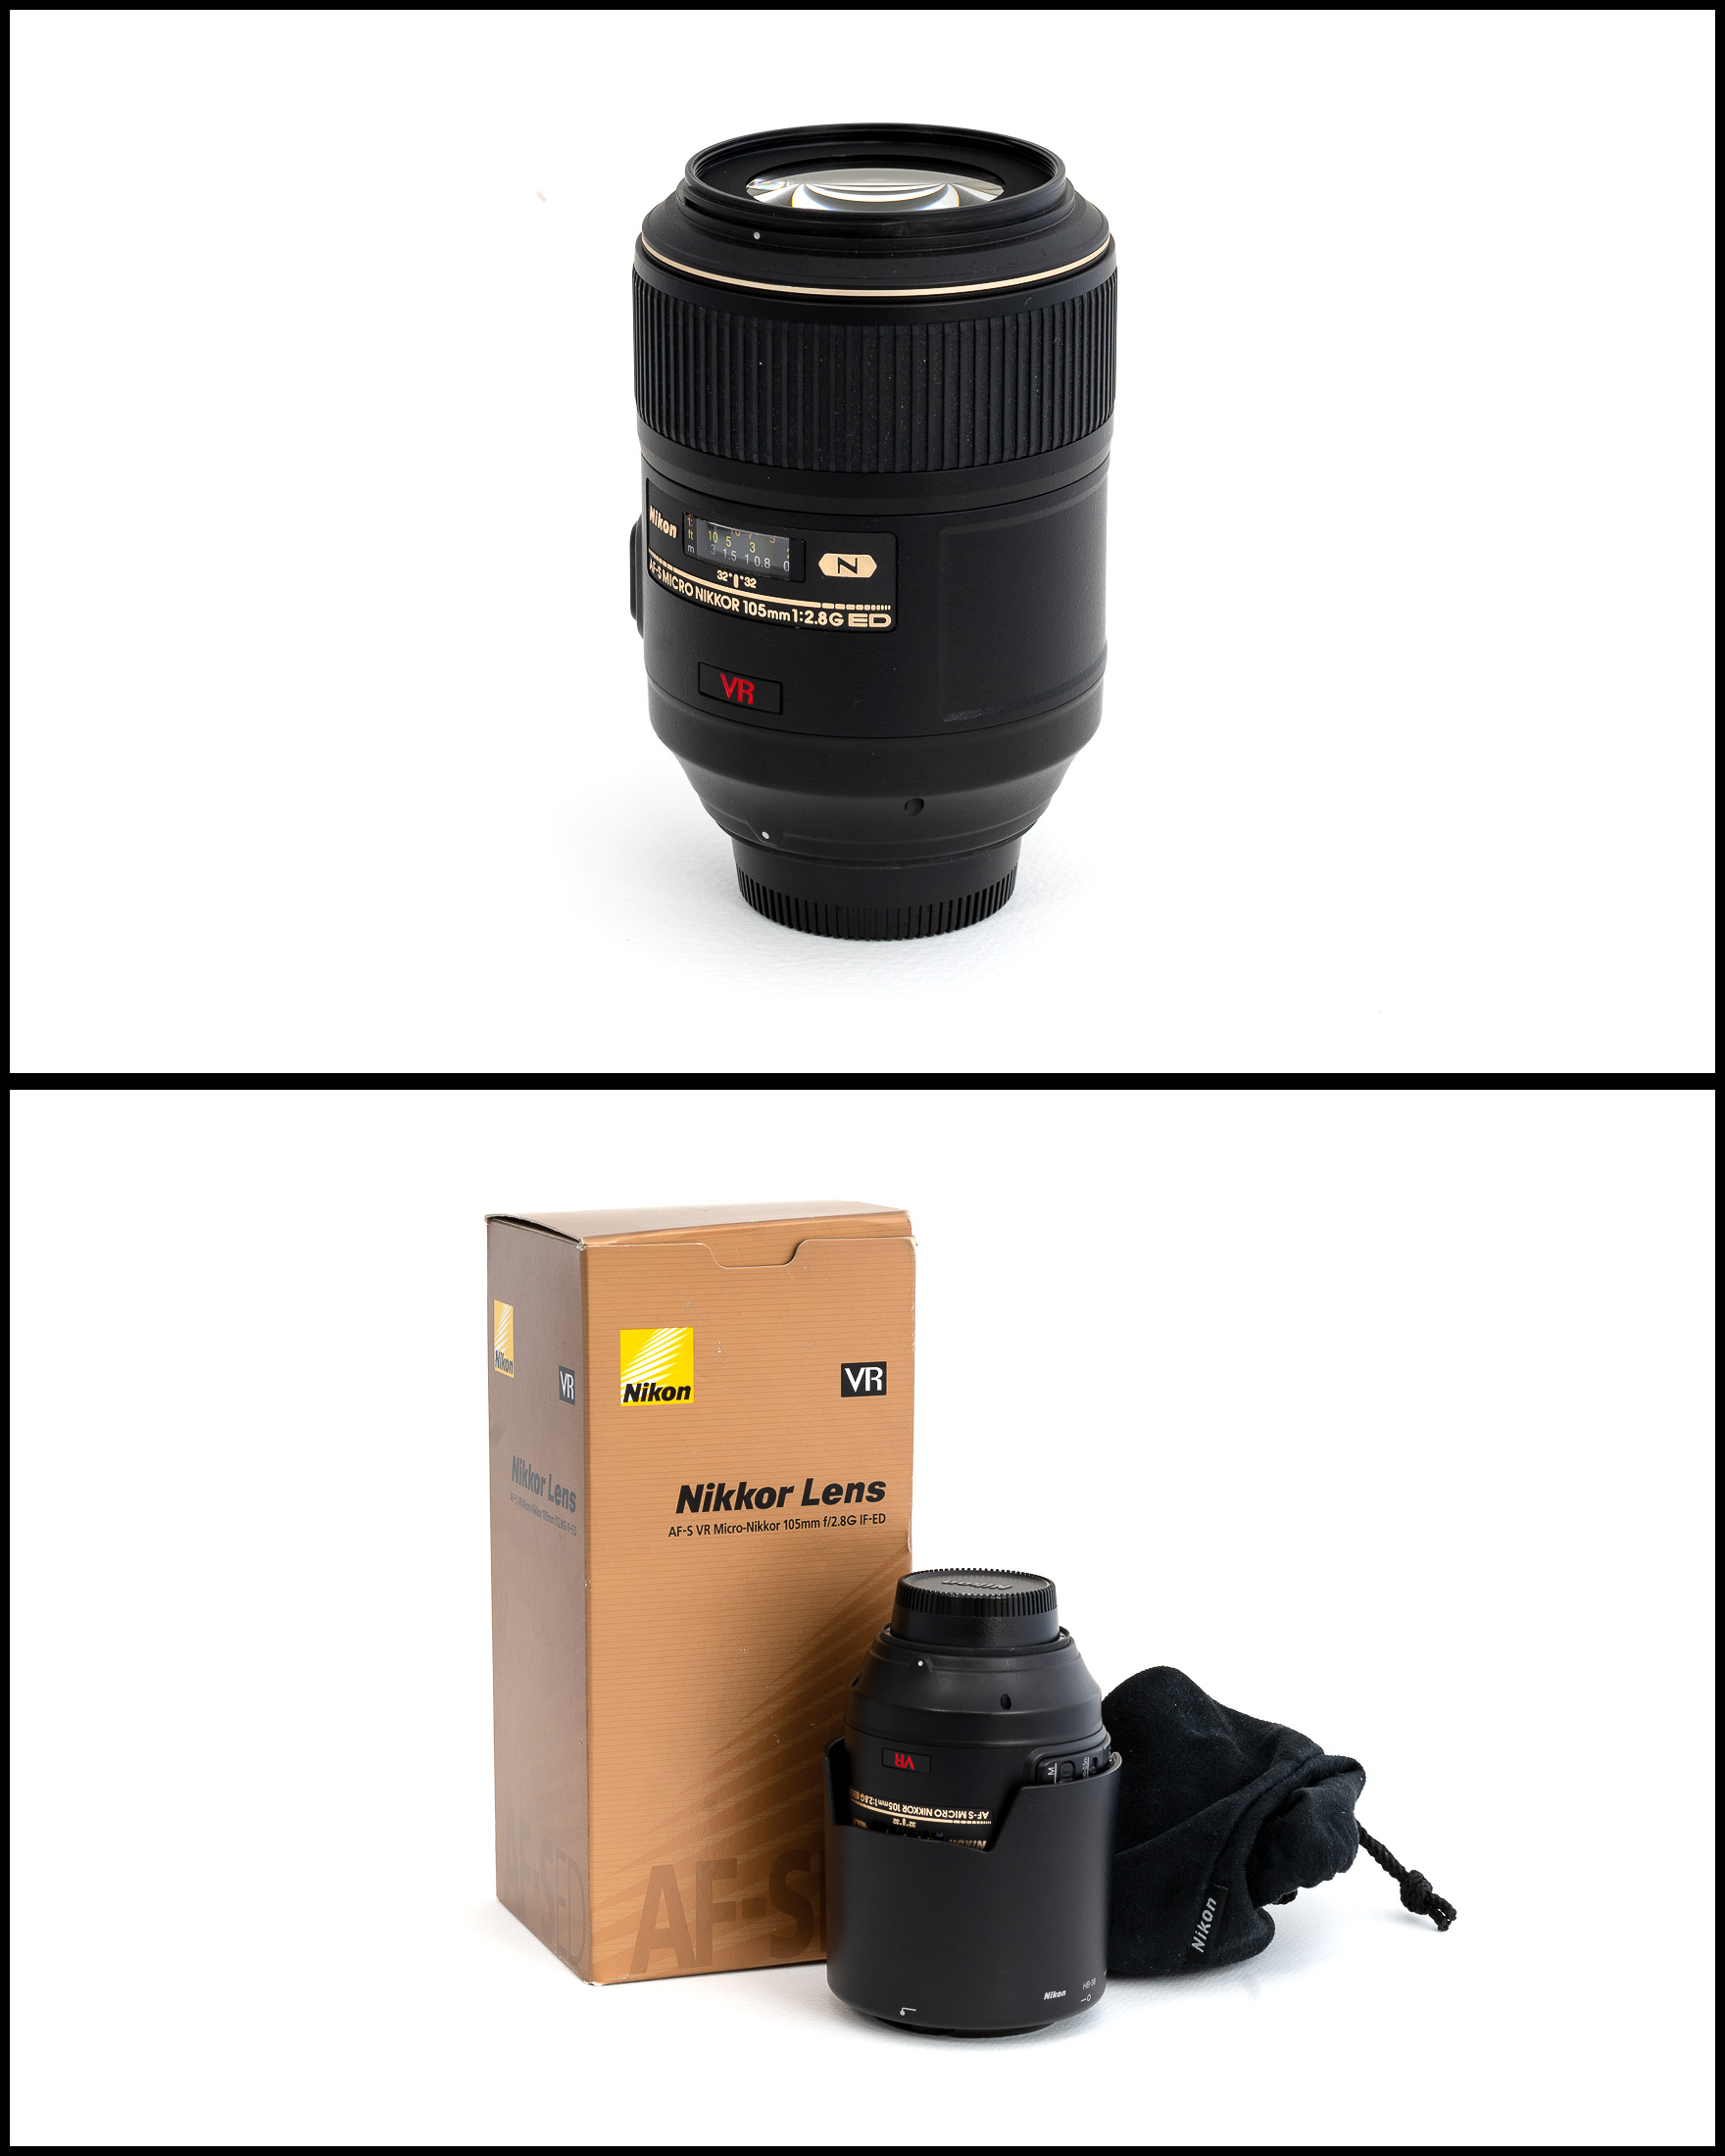 Nikkor/Nikon AF-S VR 105mm Micro f/2.8G IF-ED    £450   In excellent condition comes with lens hood, front and rear caps, manual, pouch and original box.